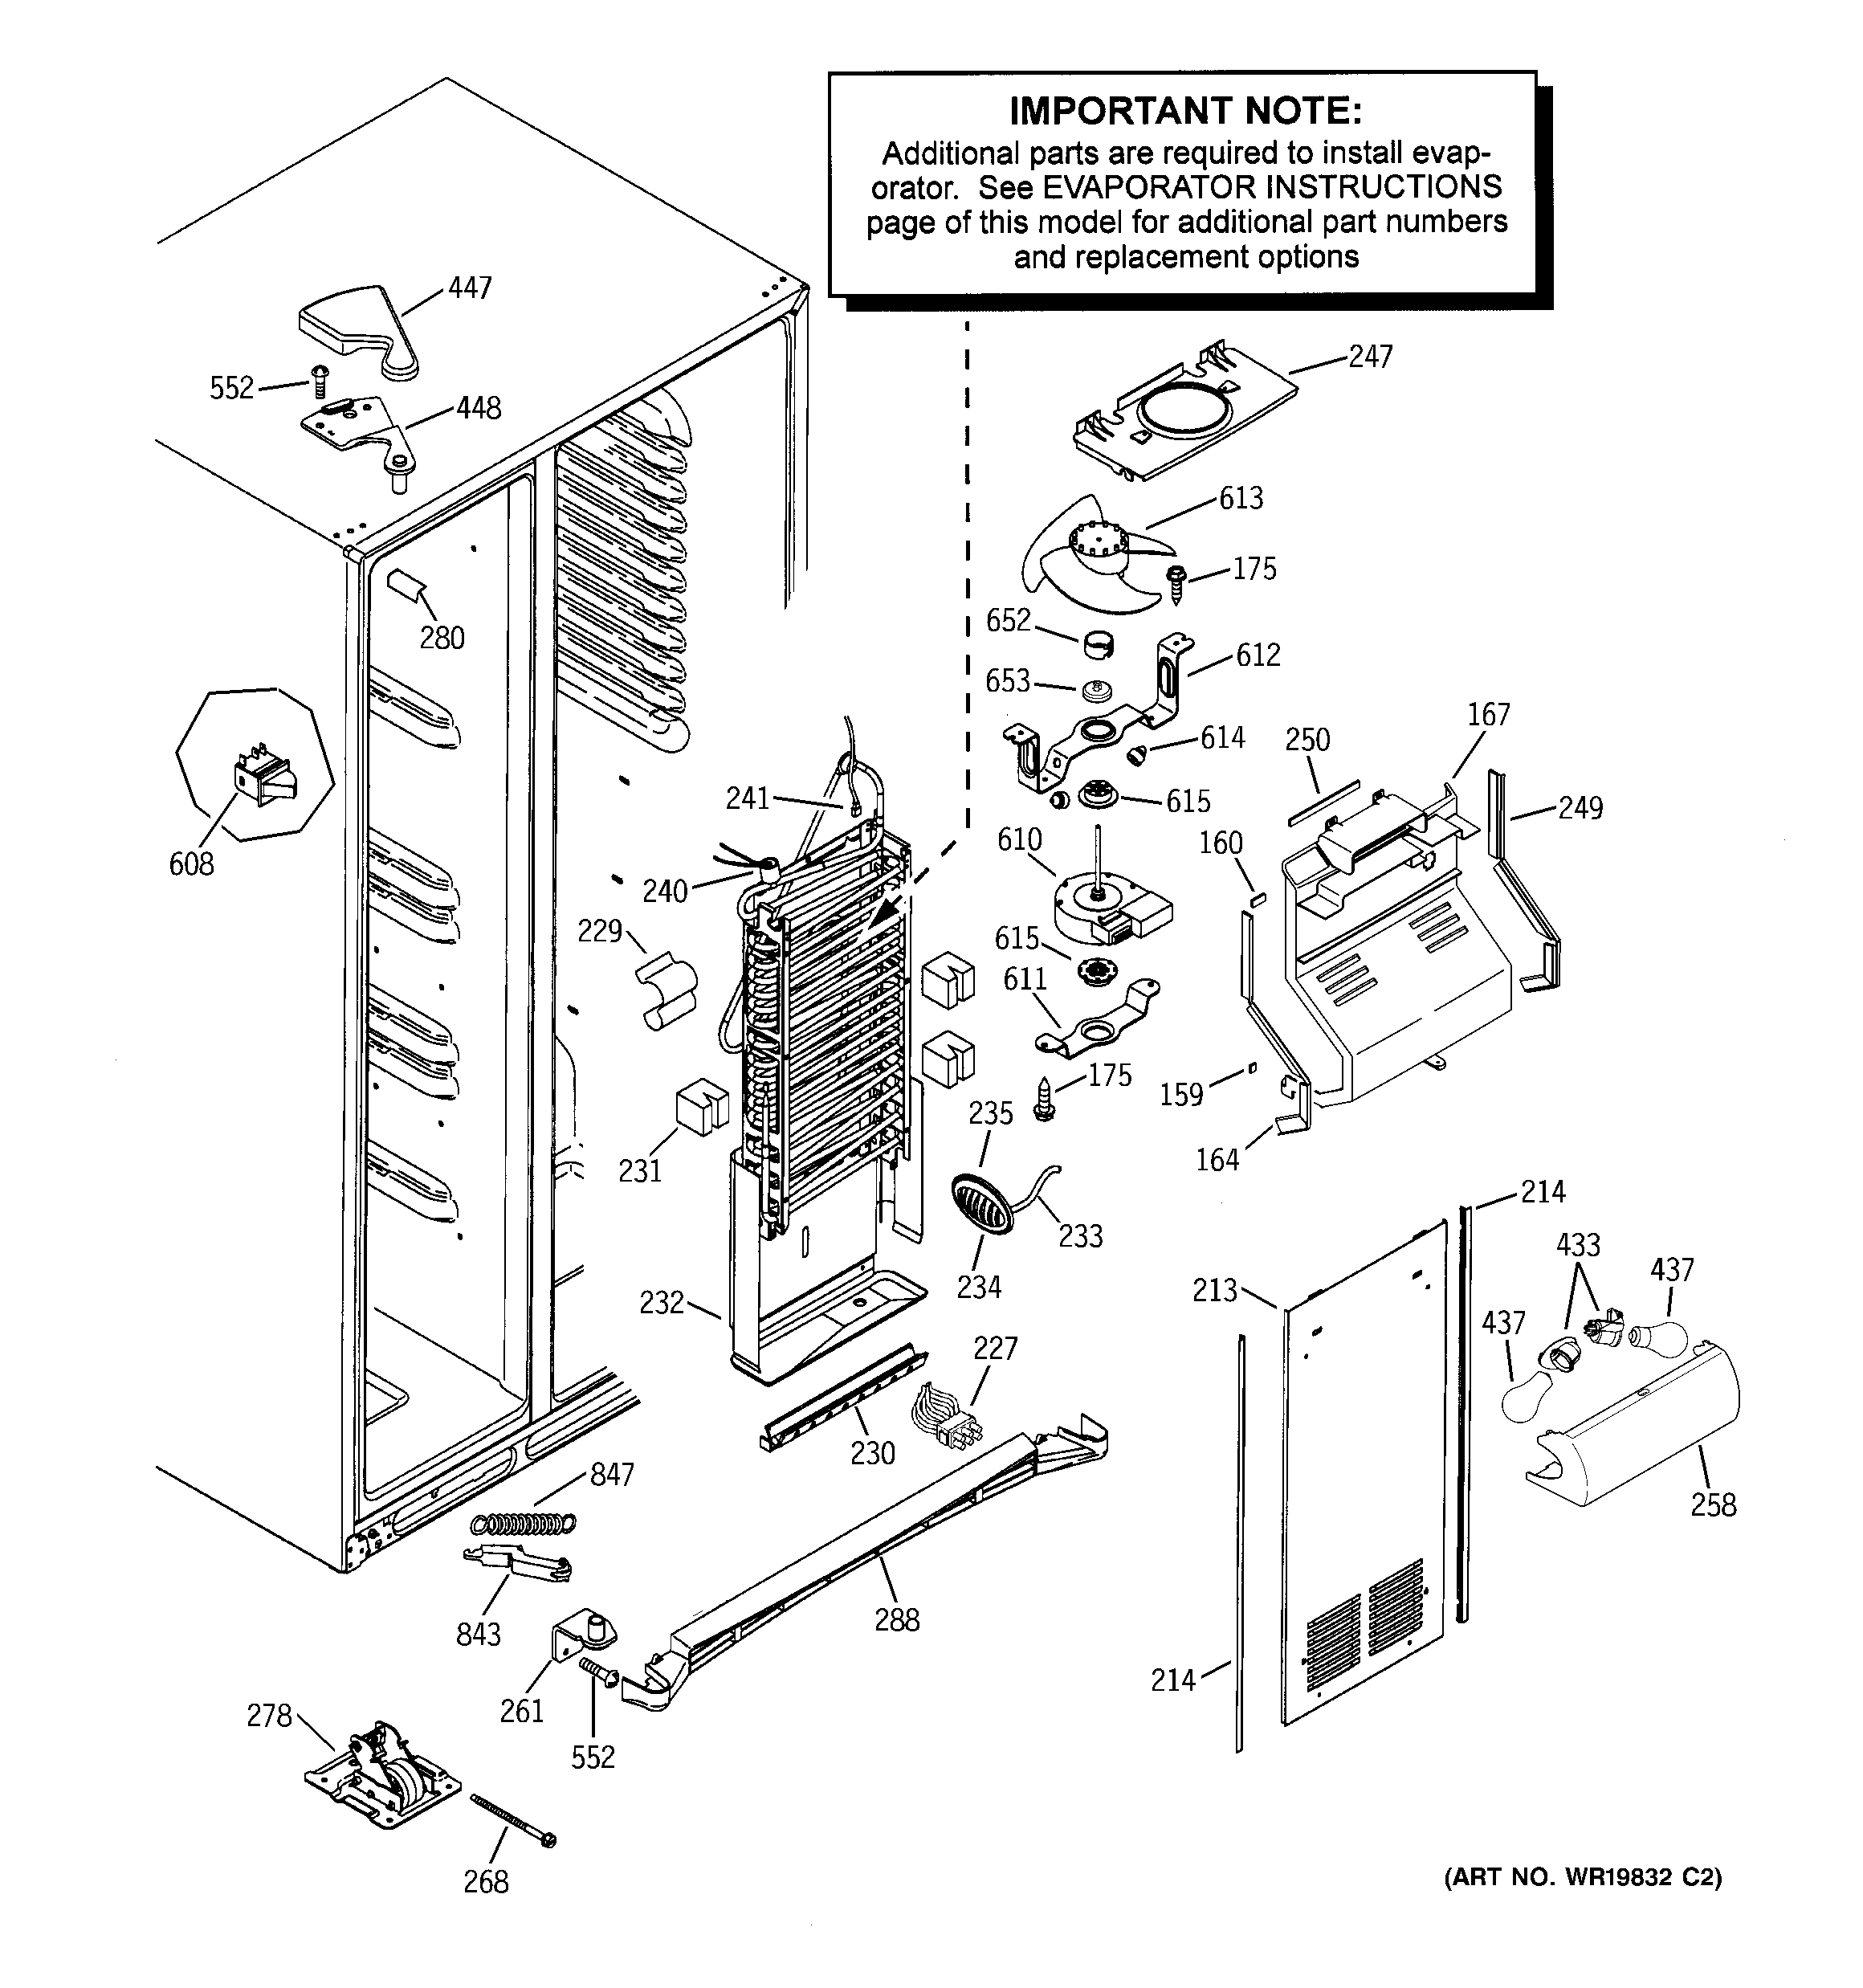 Ge Side by Side Refrigerator Wiring Diagram | Free Wiring ... Ge Hotpoint Refrigerator Wiring Diagram on